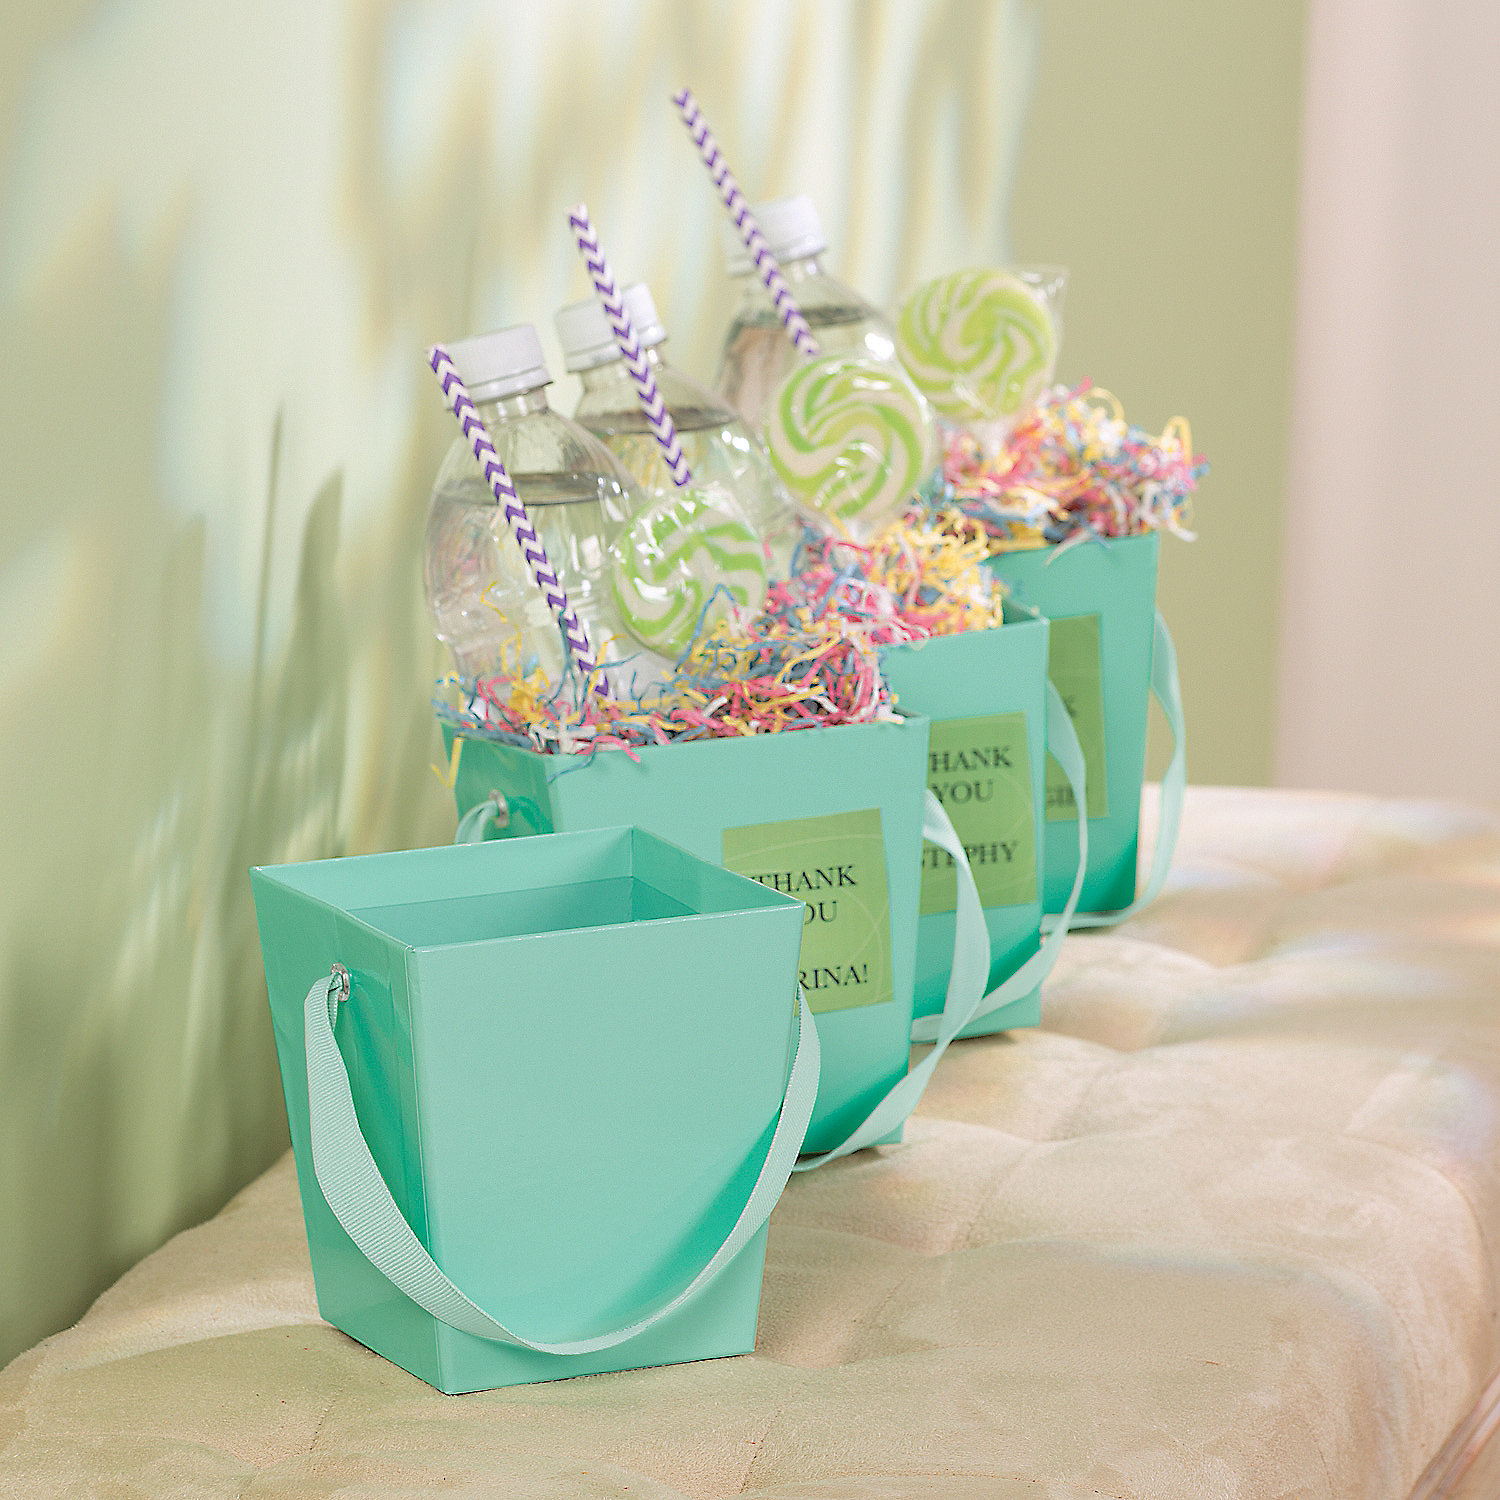 Mint green buckets with ribbon handle pails baskets